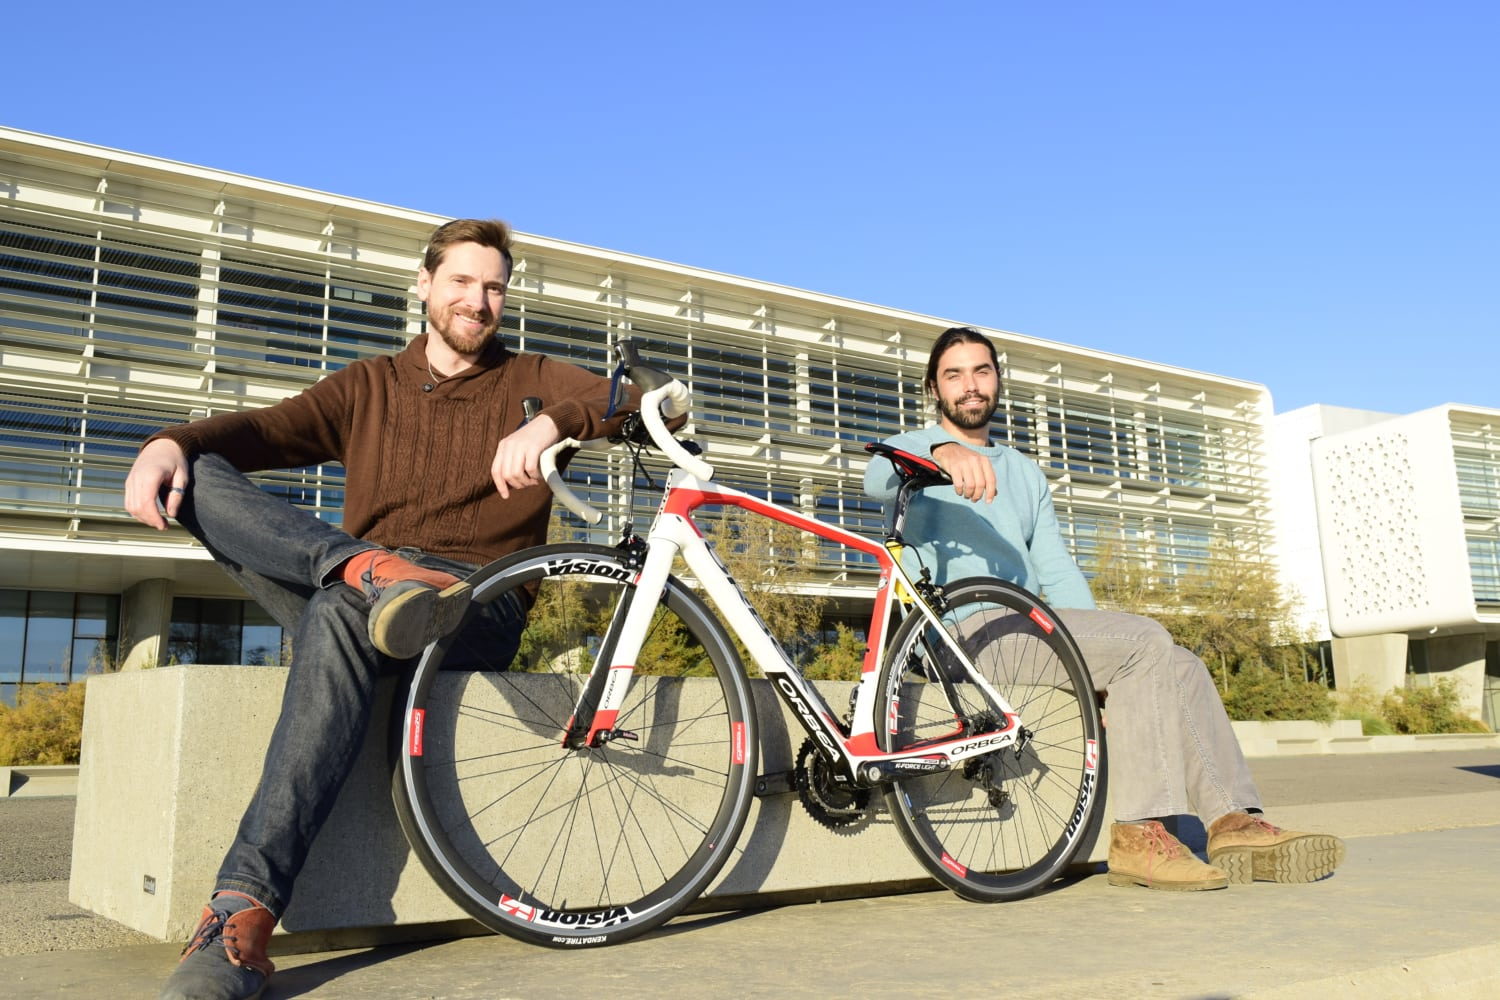 Tuvalum, the second-hand bike marketplace with a quality guarantee